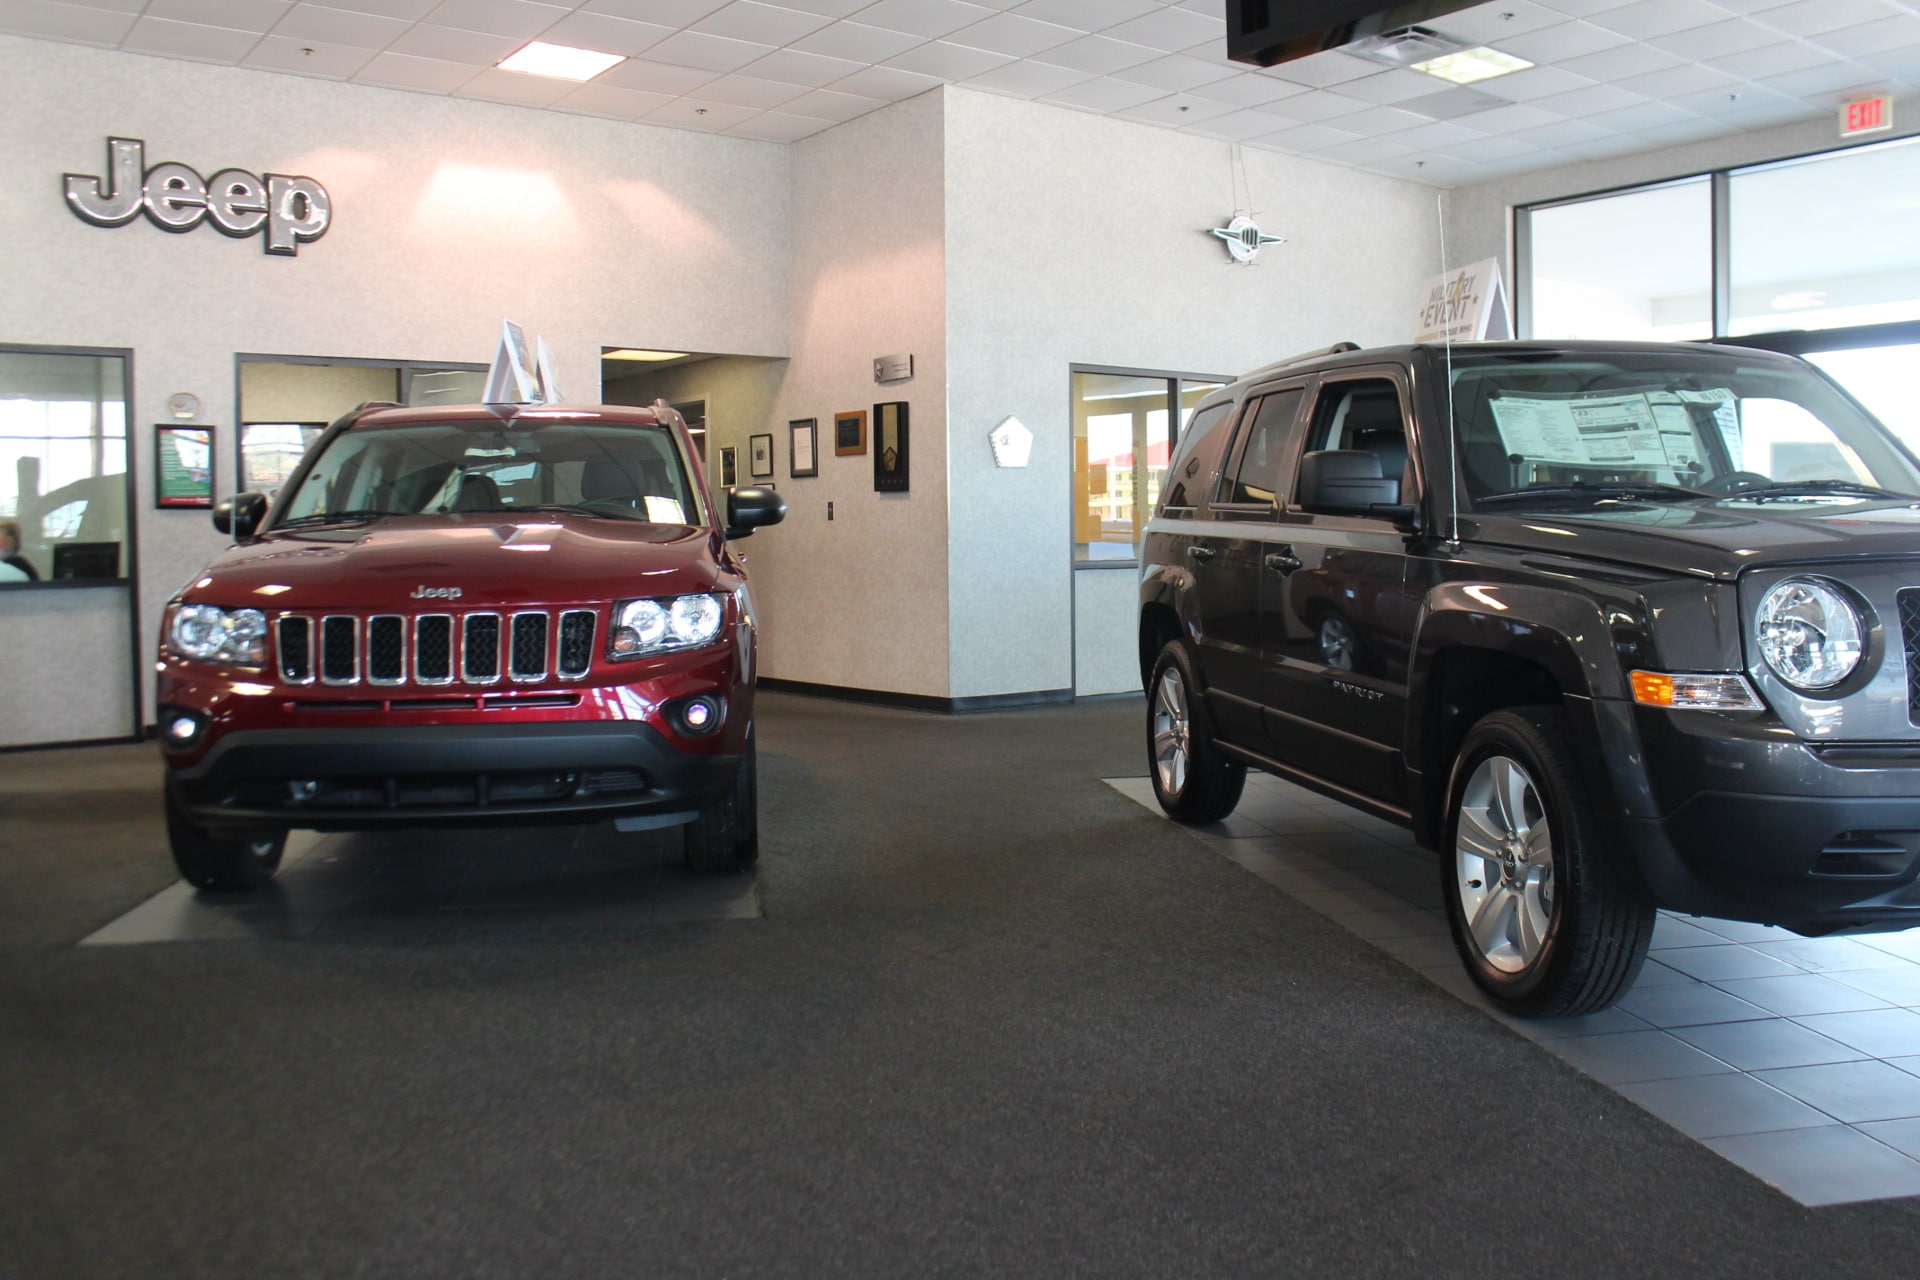 jeep cherokee suv starting at 22995 2014 jeep compass suv starting. Cars Review. Best American Auto & Cars Review